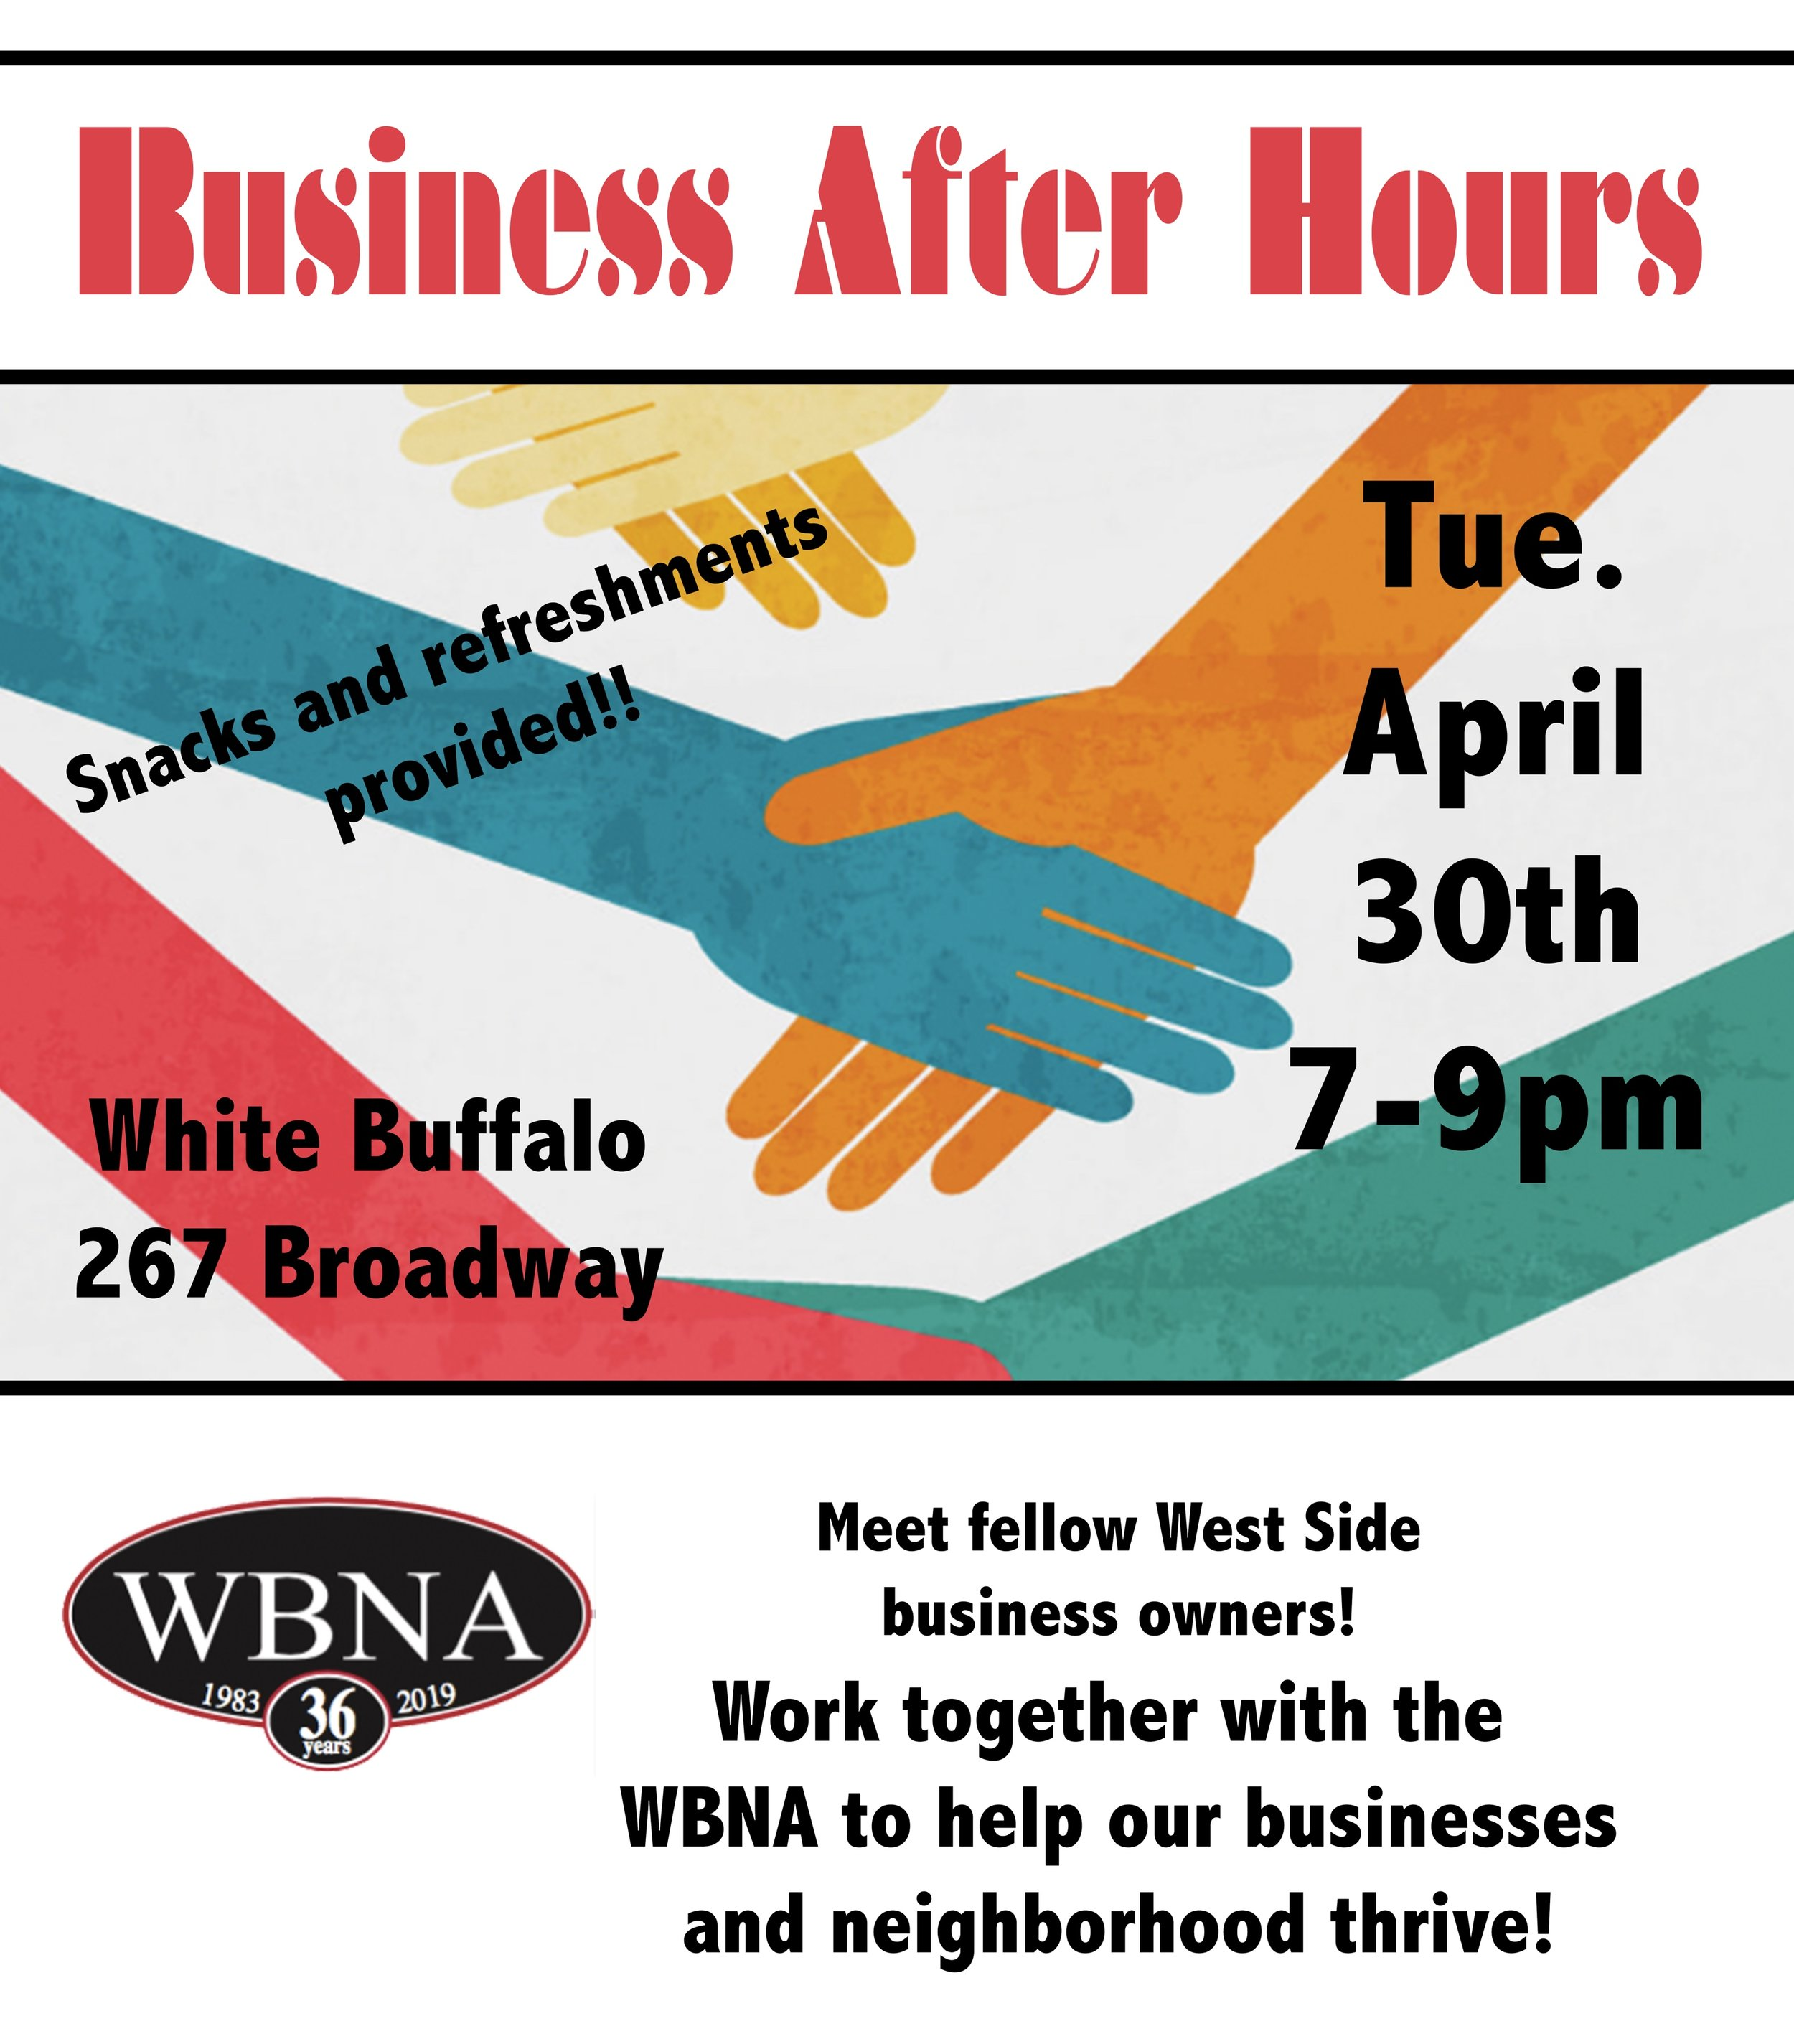 business after hours flyer 20190430-sml.jpg